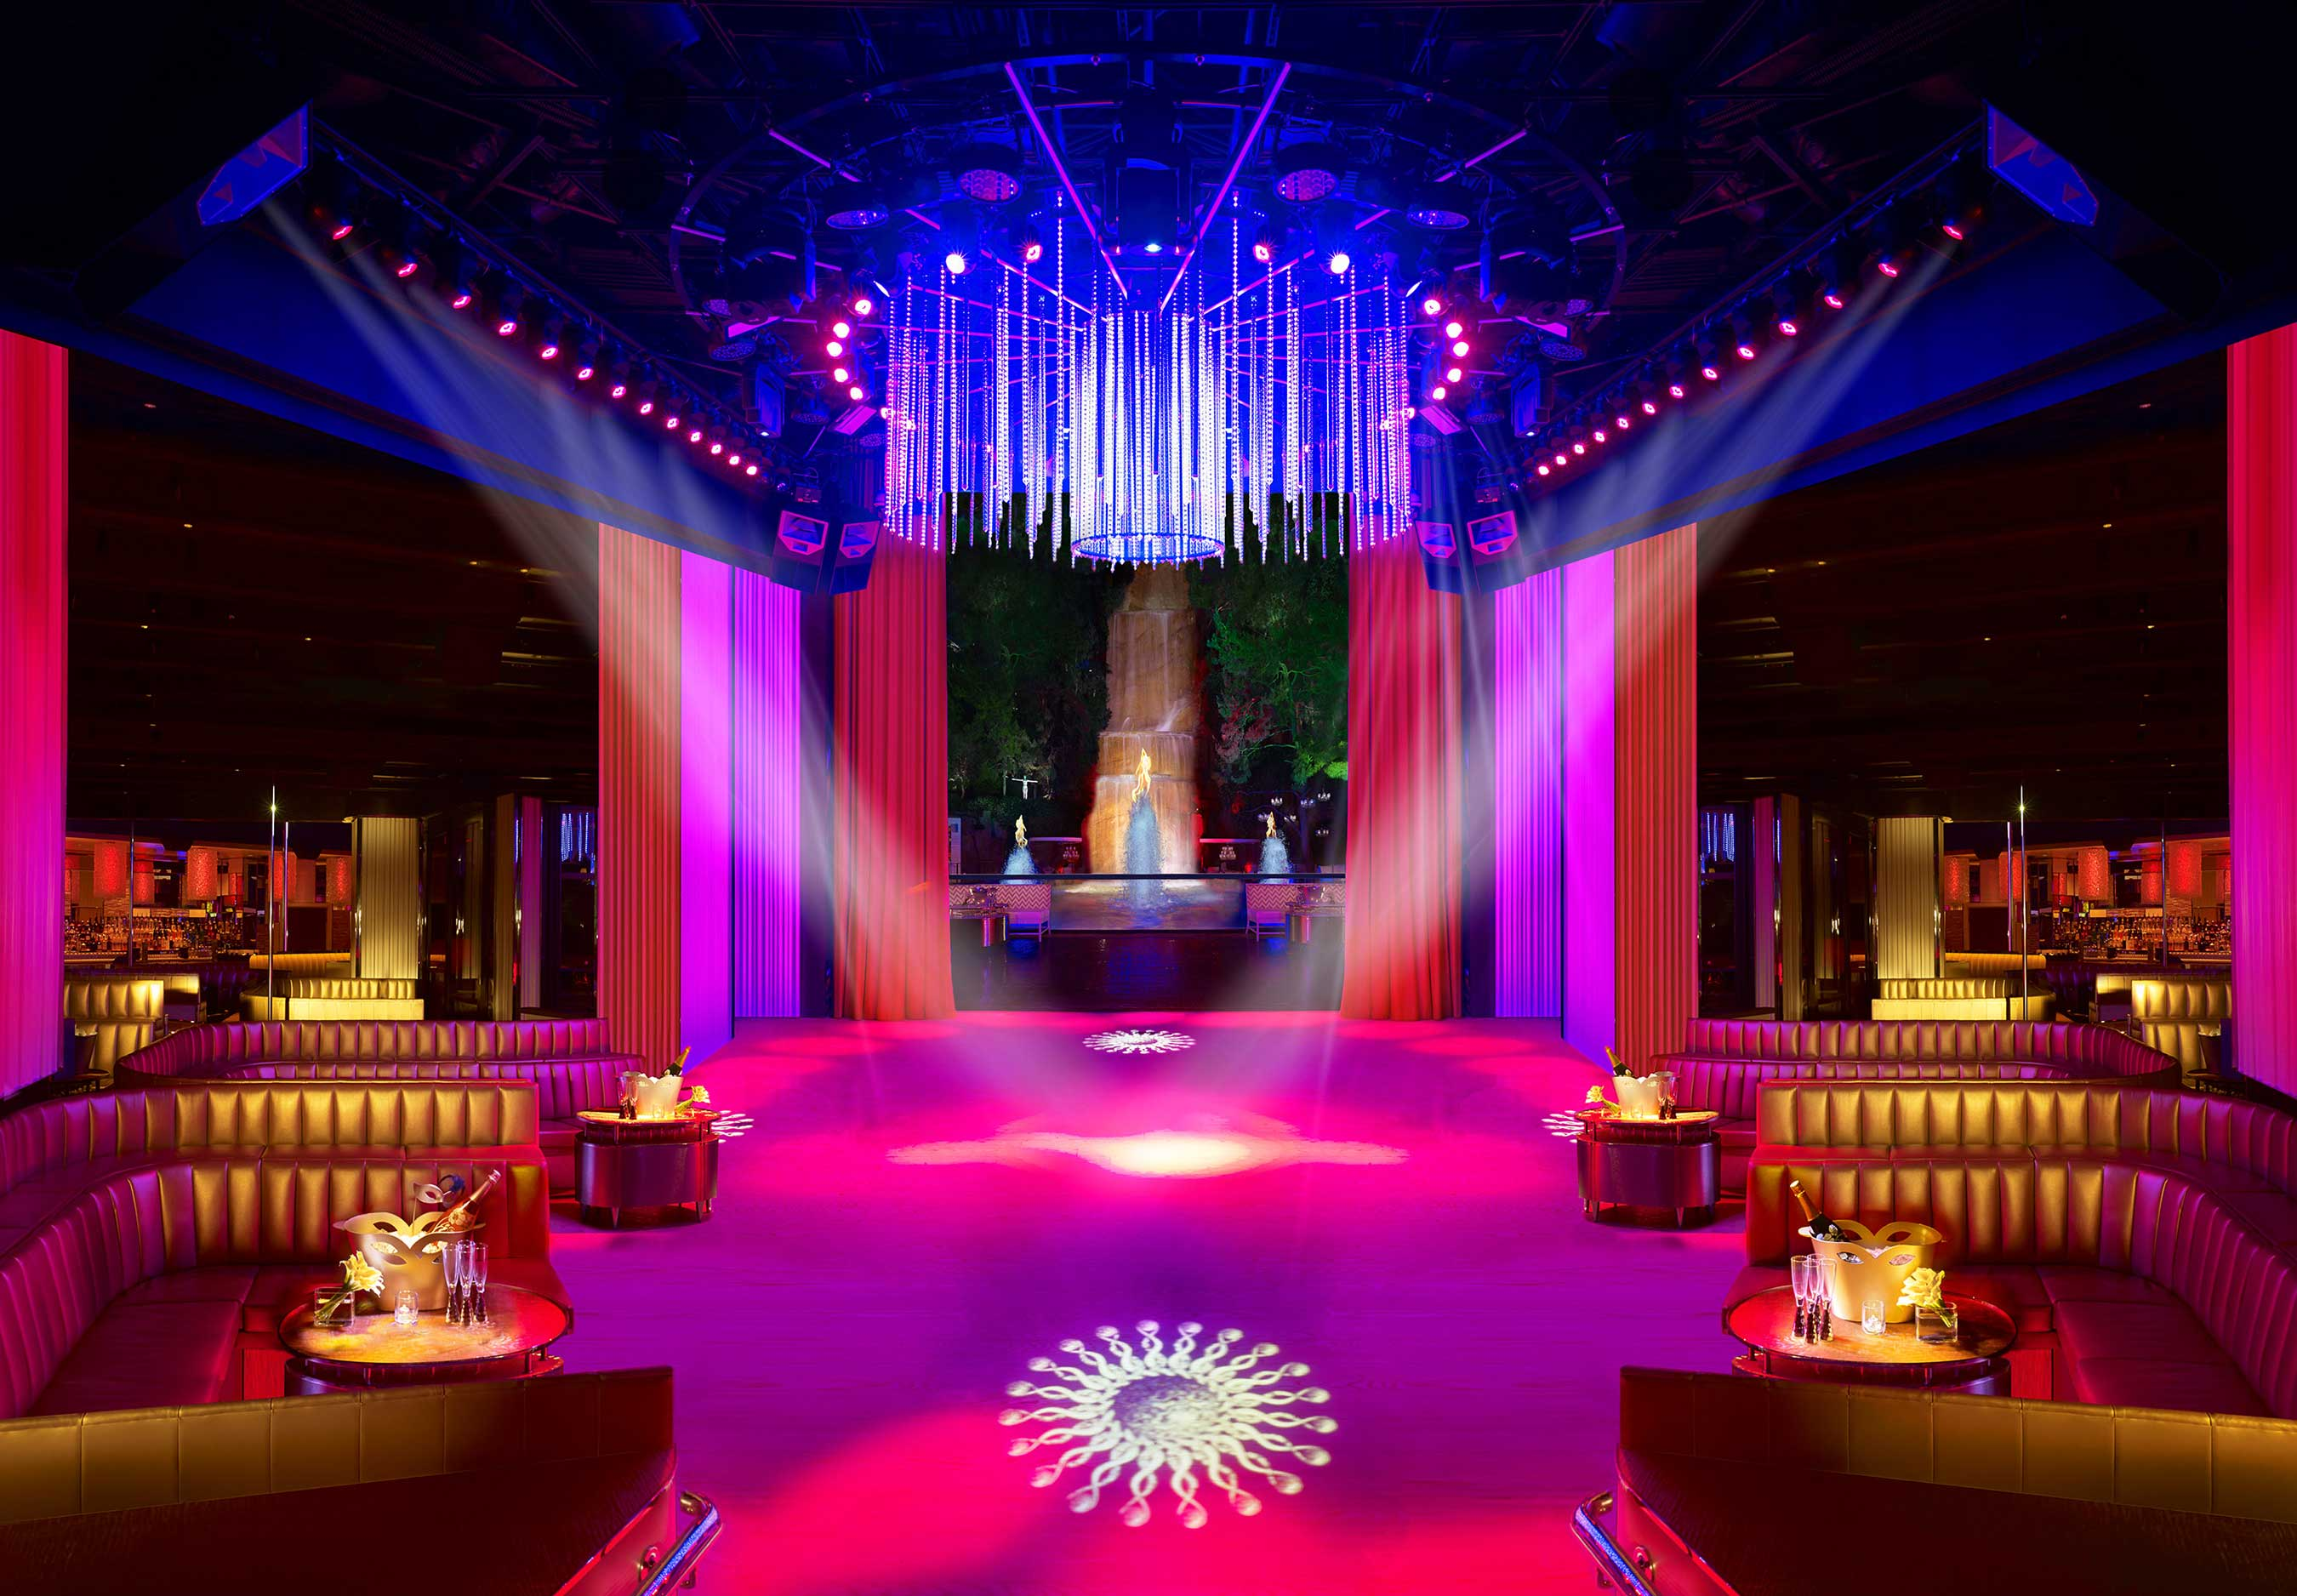 Awesome Nightclub Ideas And Designs Pictures - Interior Design ...